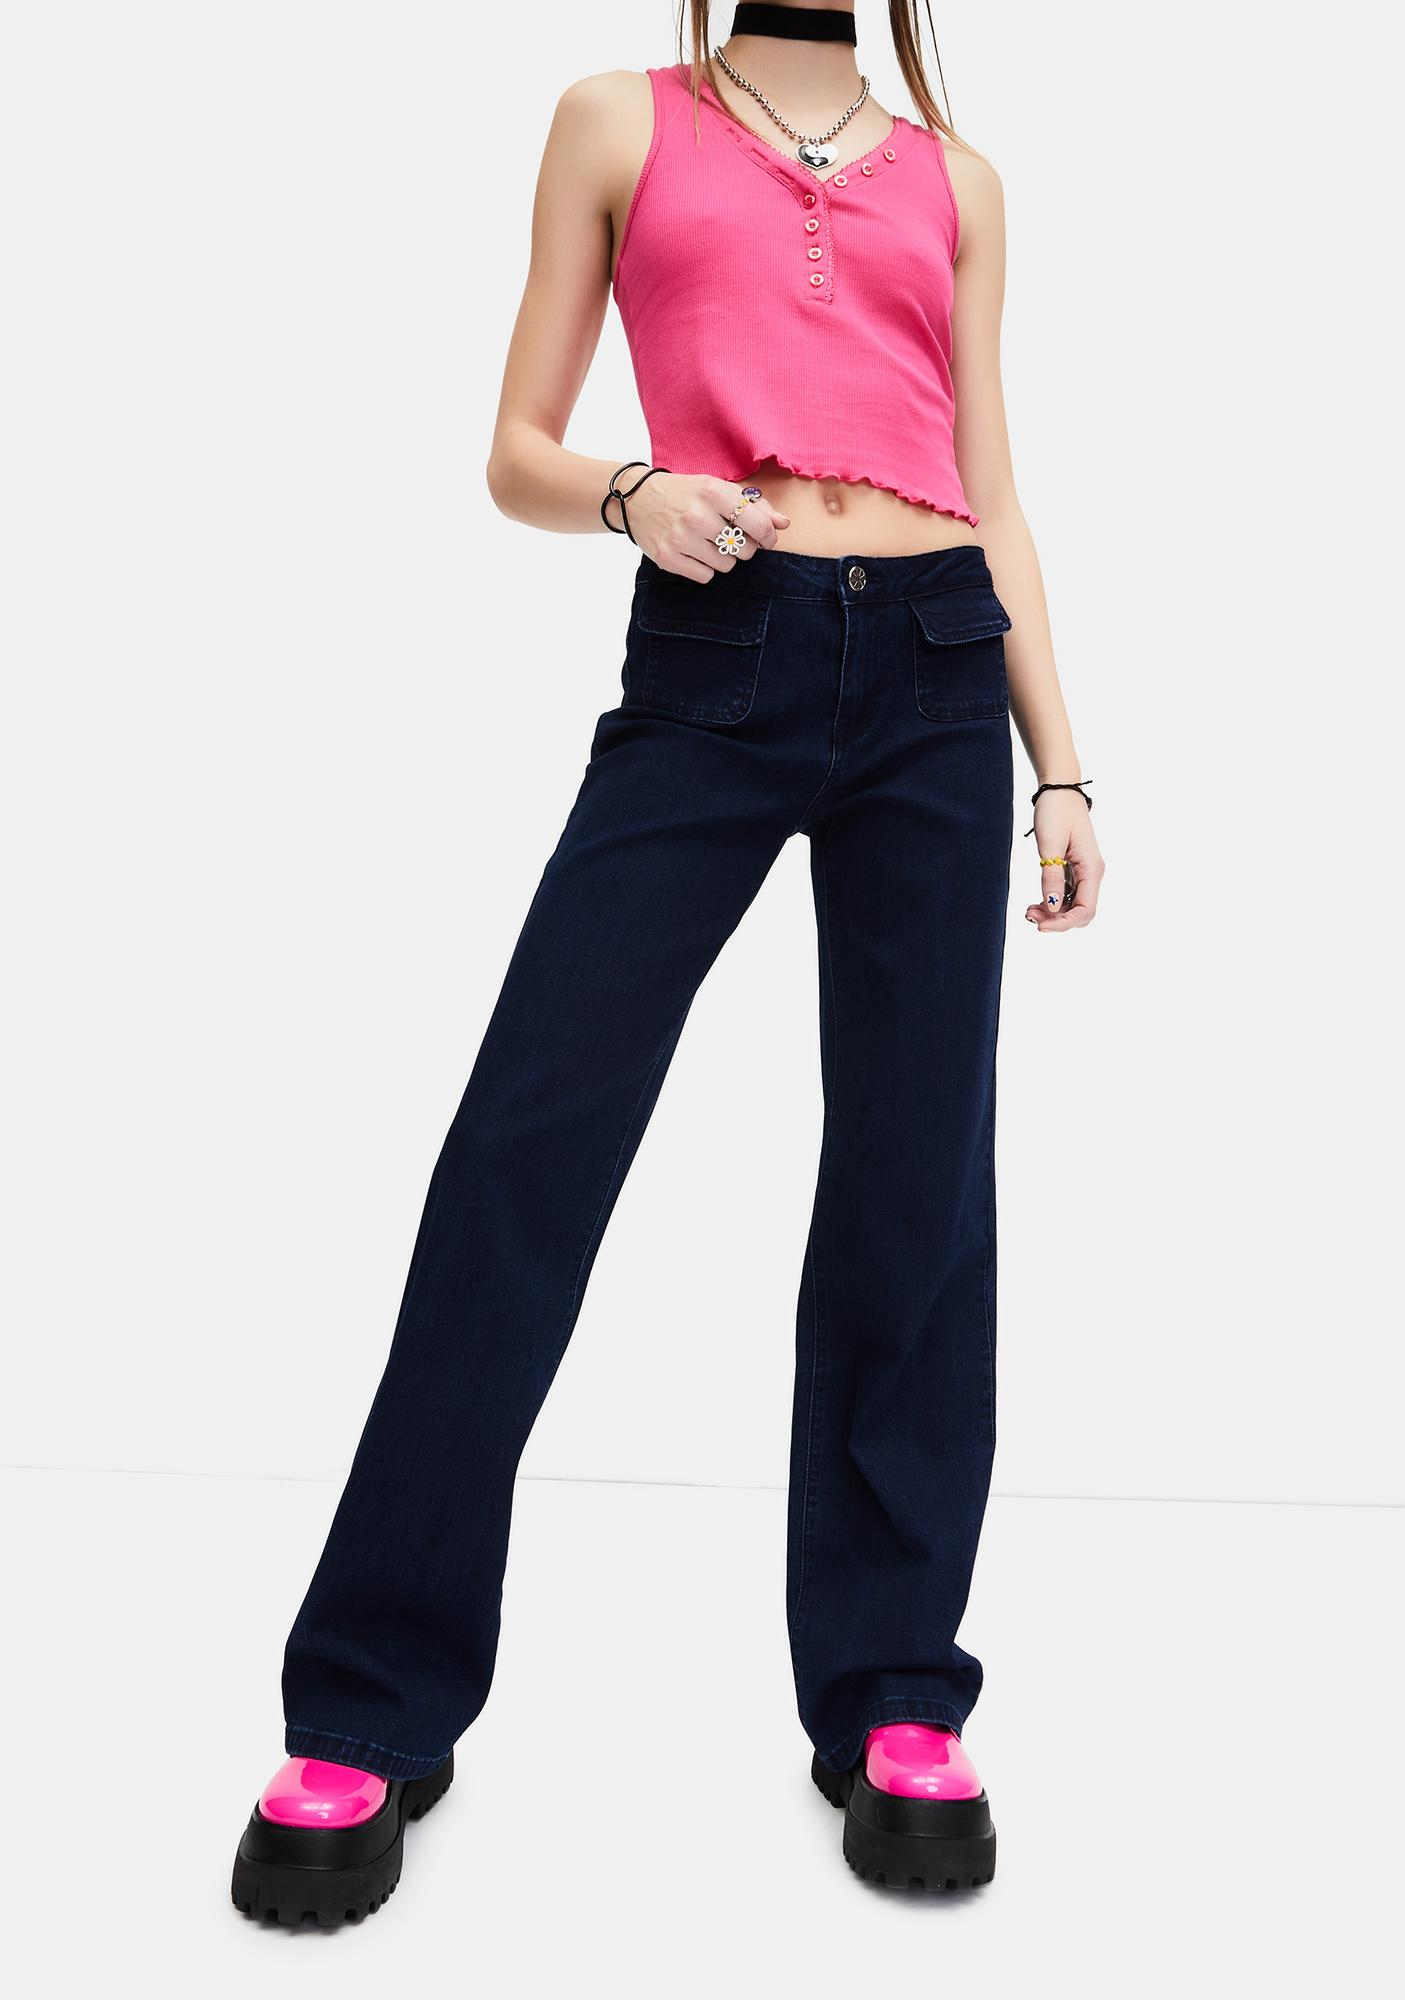 dELiA*s by Dolls Kill Time To Pretend Low Rise Jeans